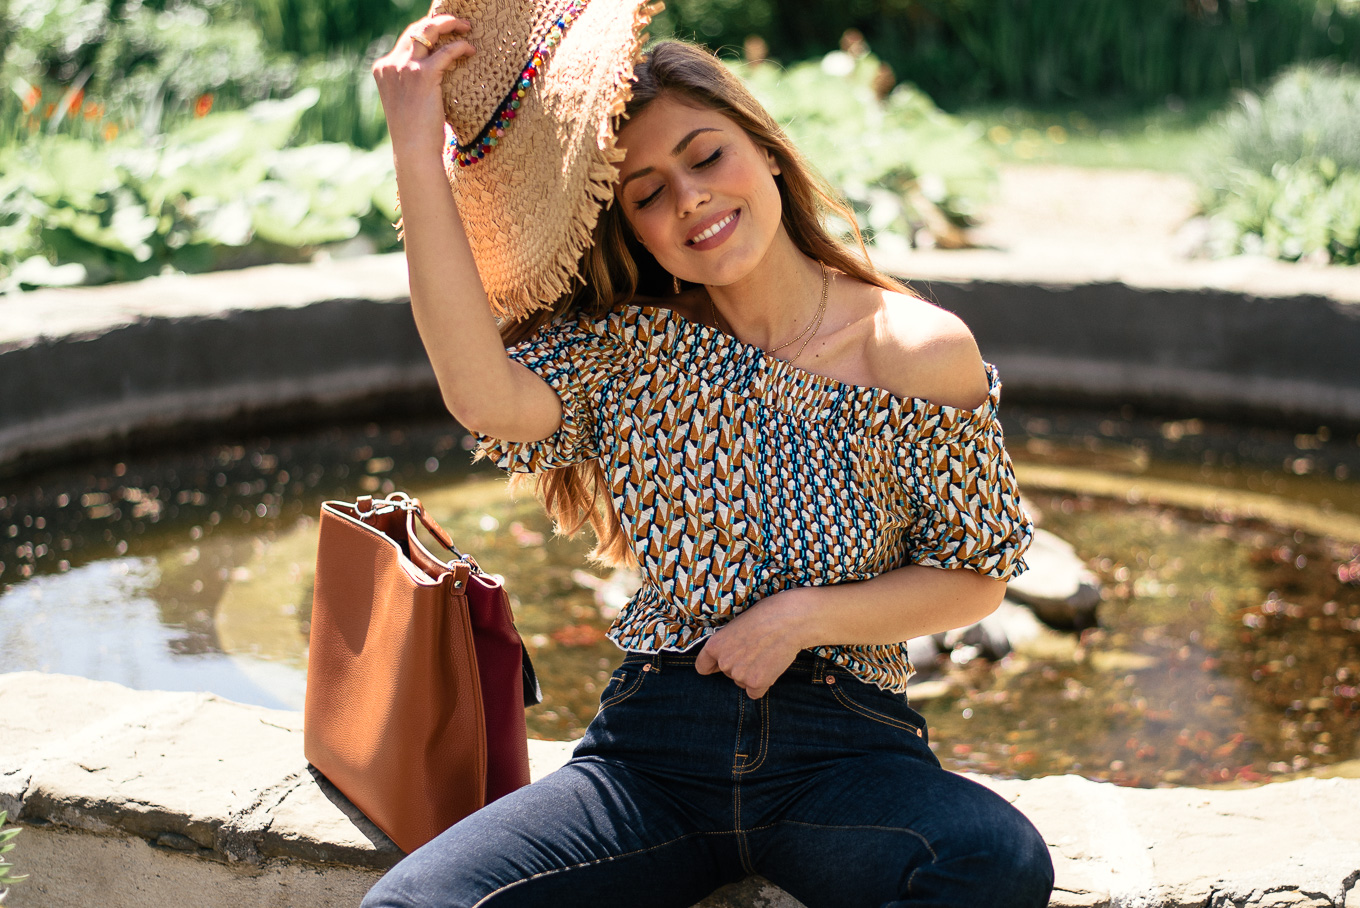 European fashion blogger wearing toatsted jeans